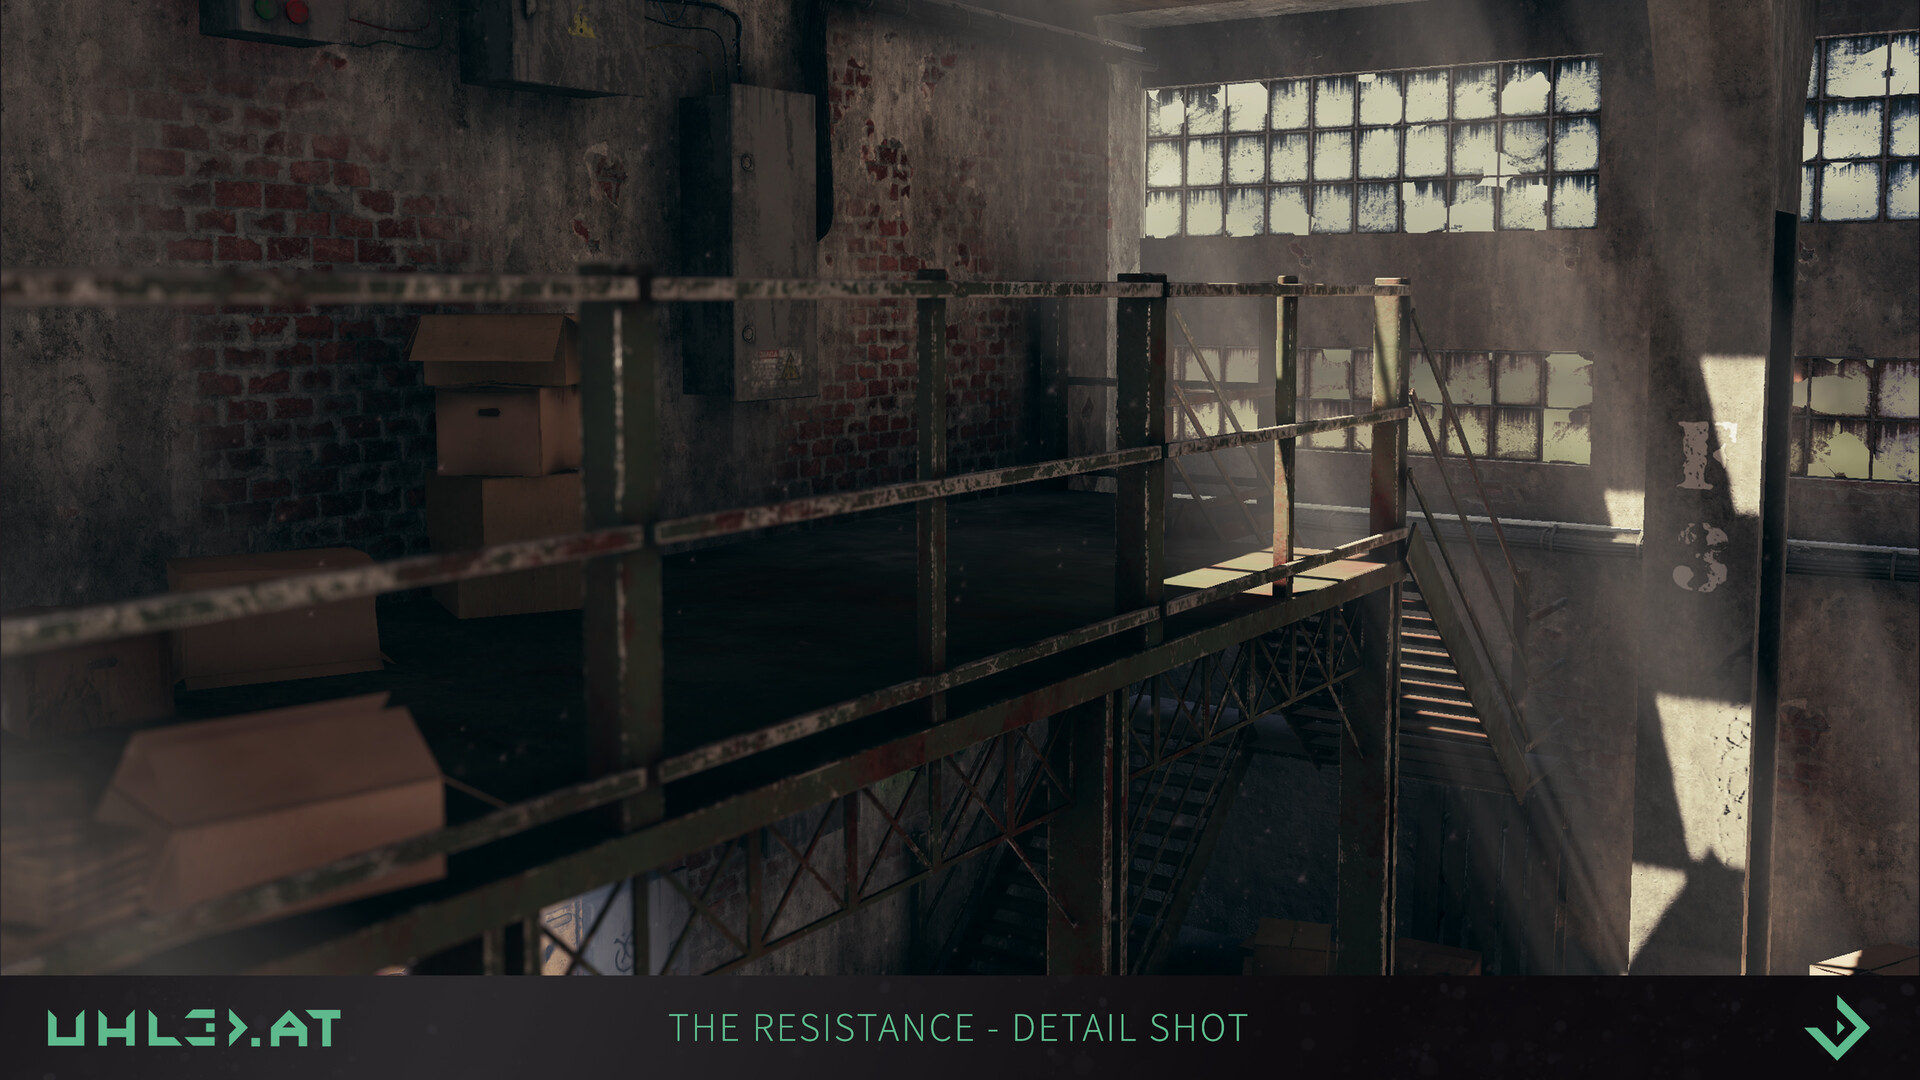 Dominik uhl the resistance detailshot 07